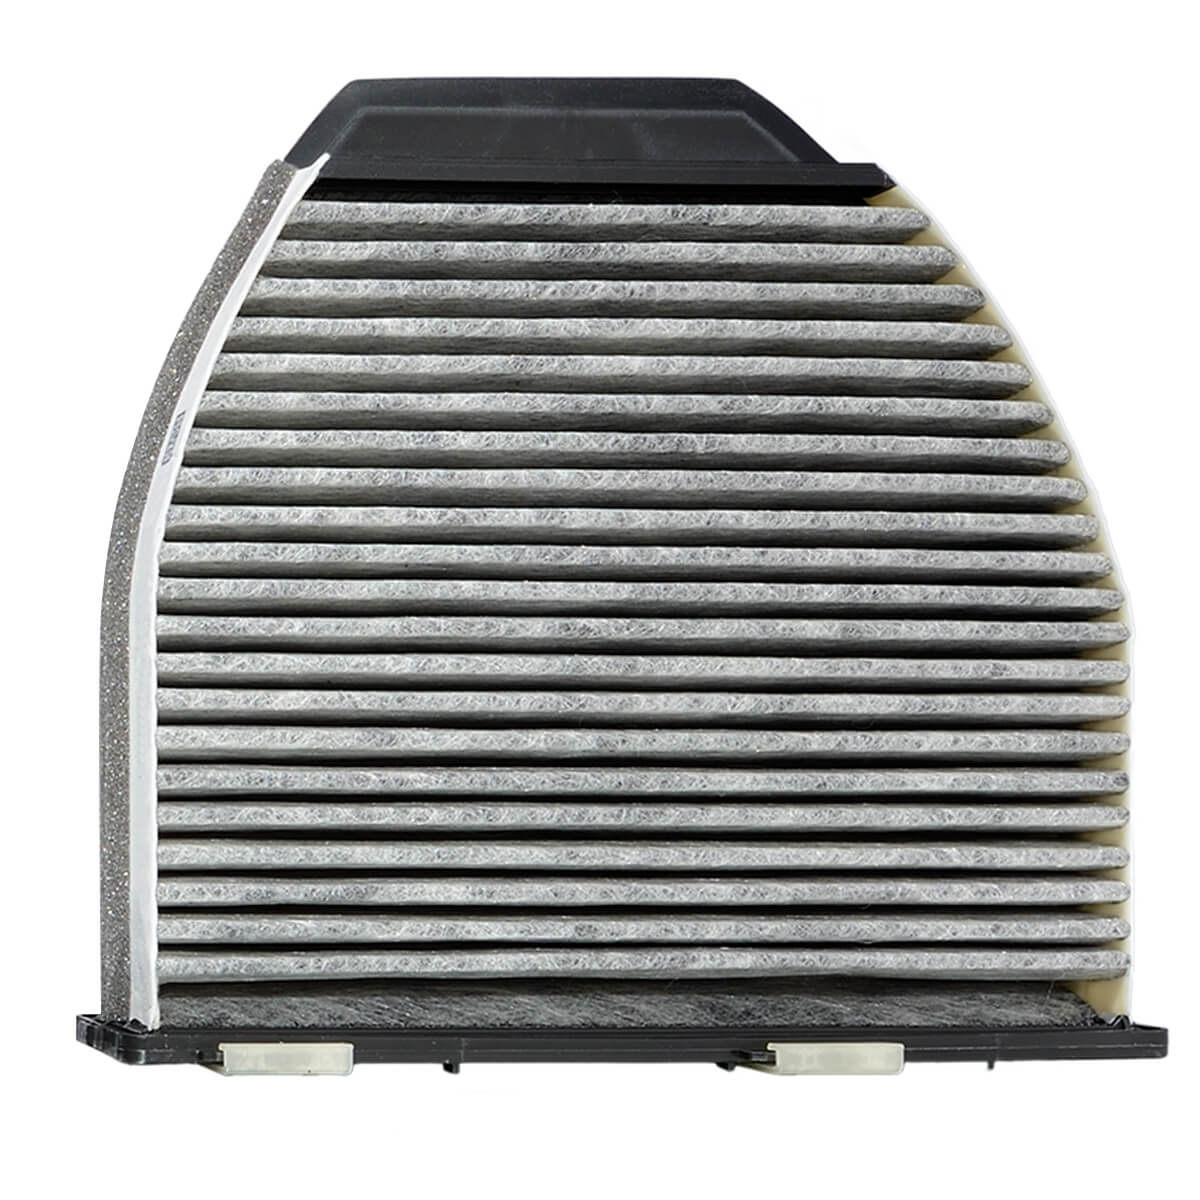 CHRYSLER VOYAGER IV Cabin Filter